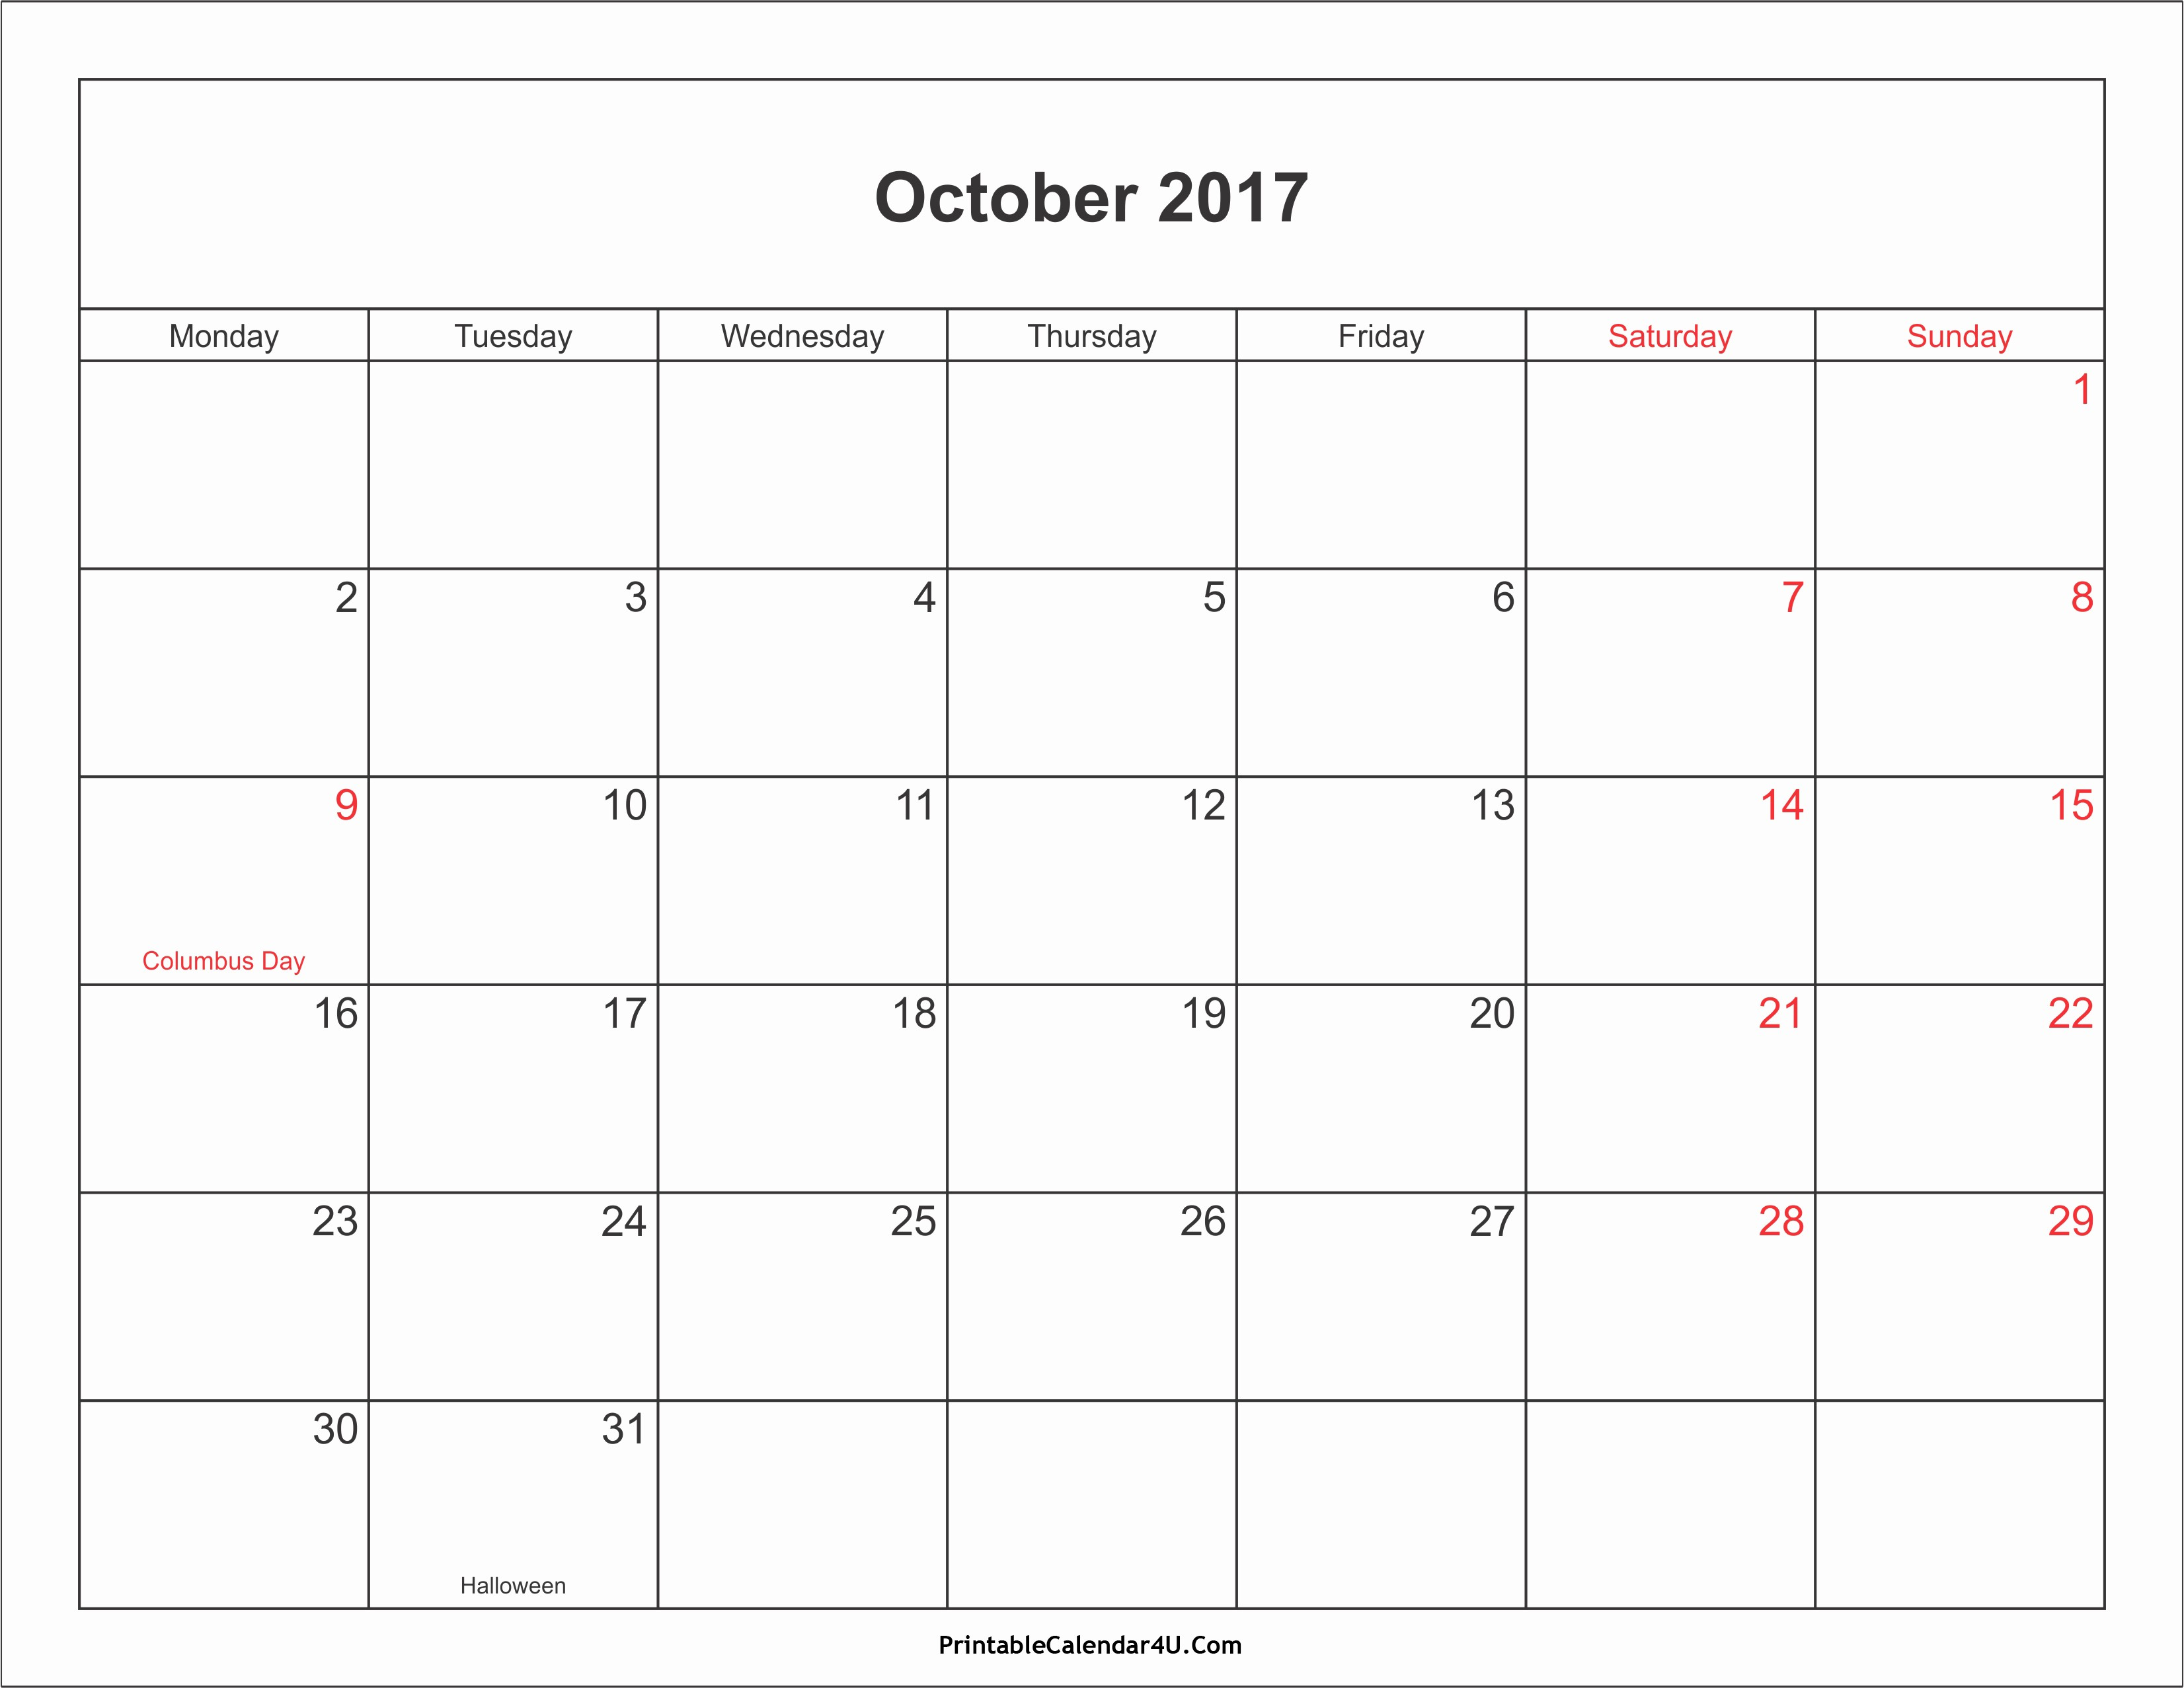 Calendar 2017 Template with Holidays Lovely October 2017 Calendar with Holidays